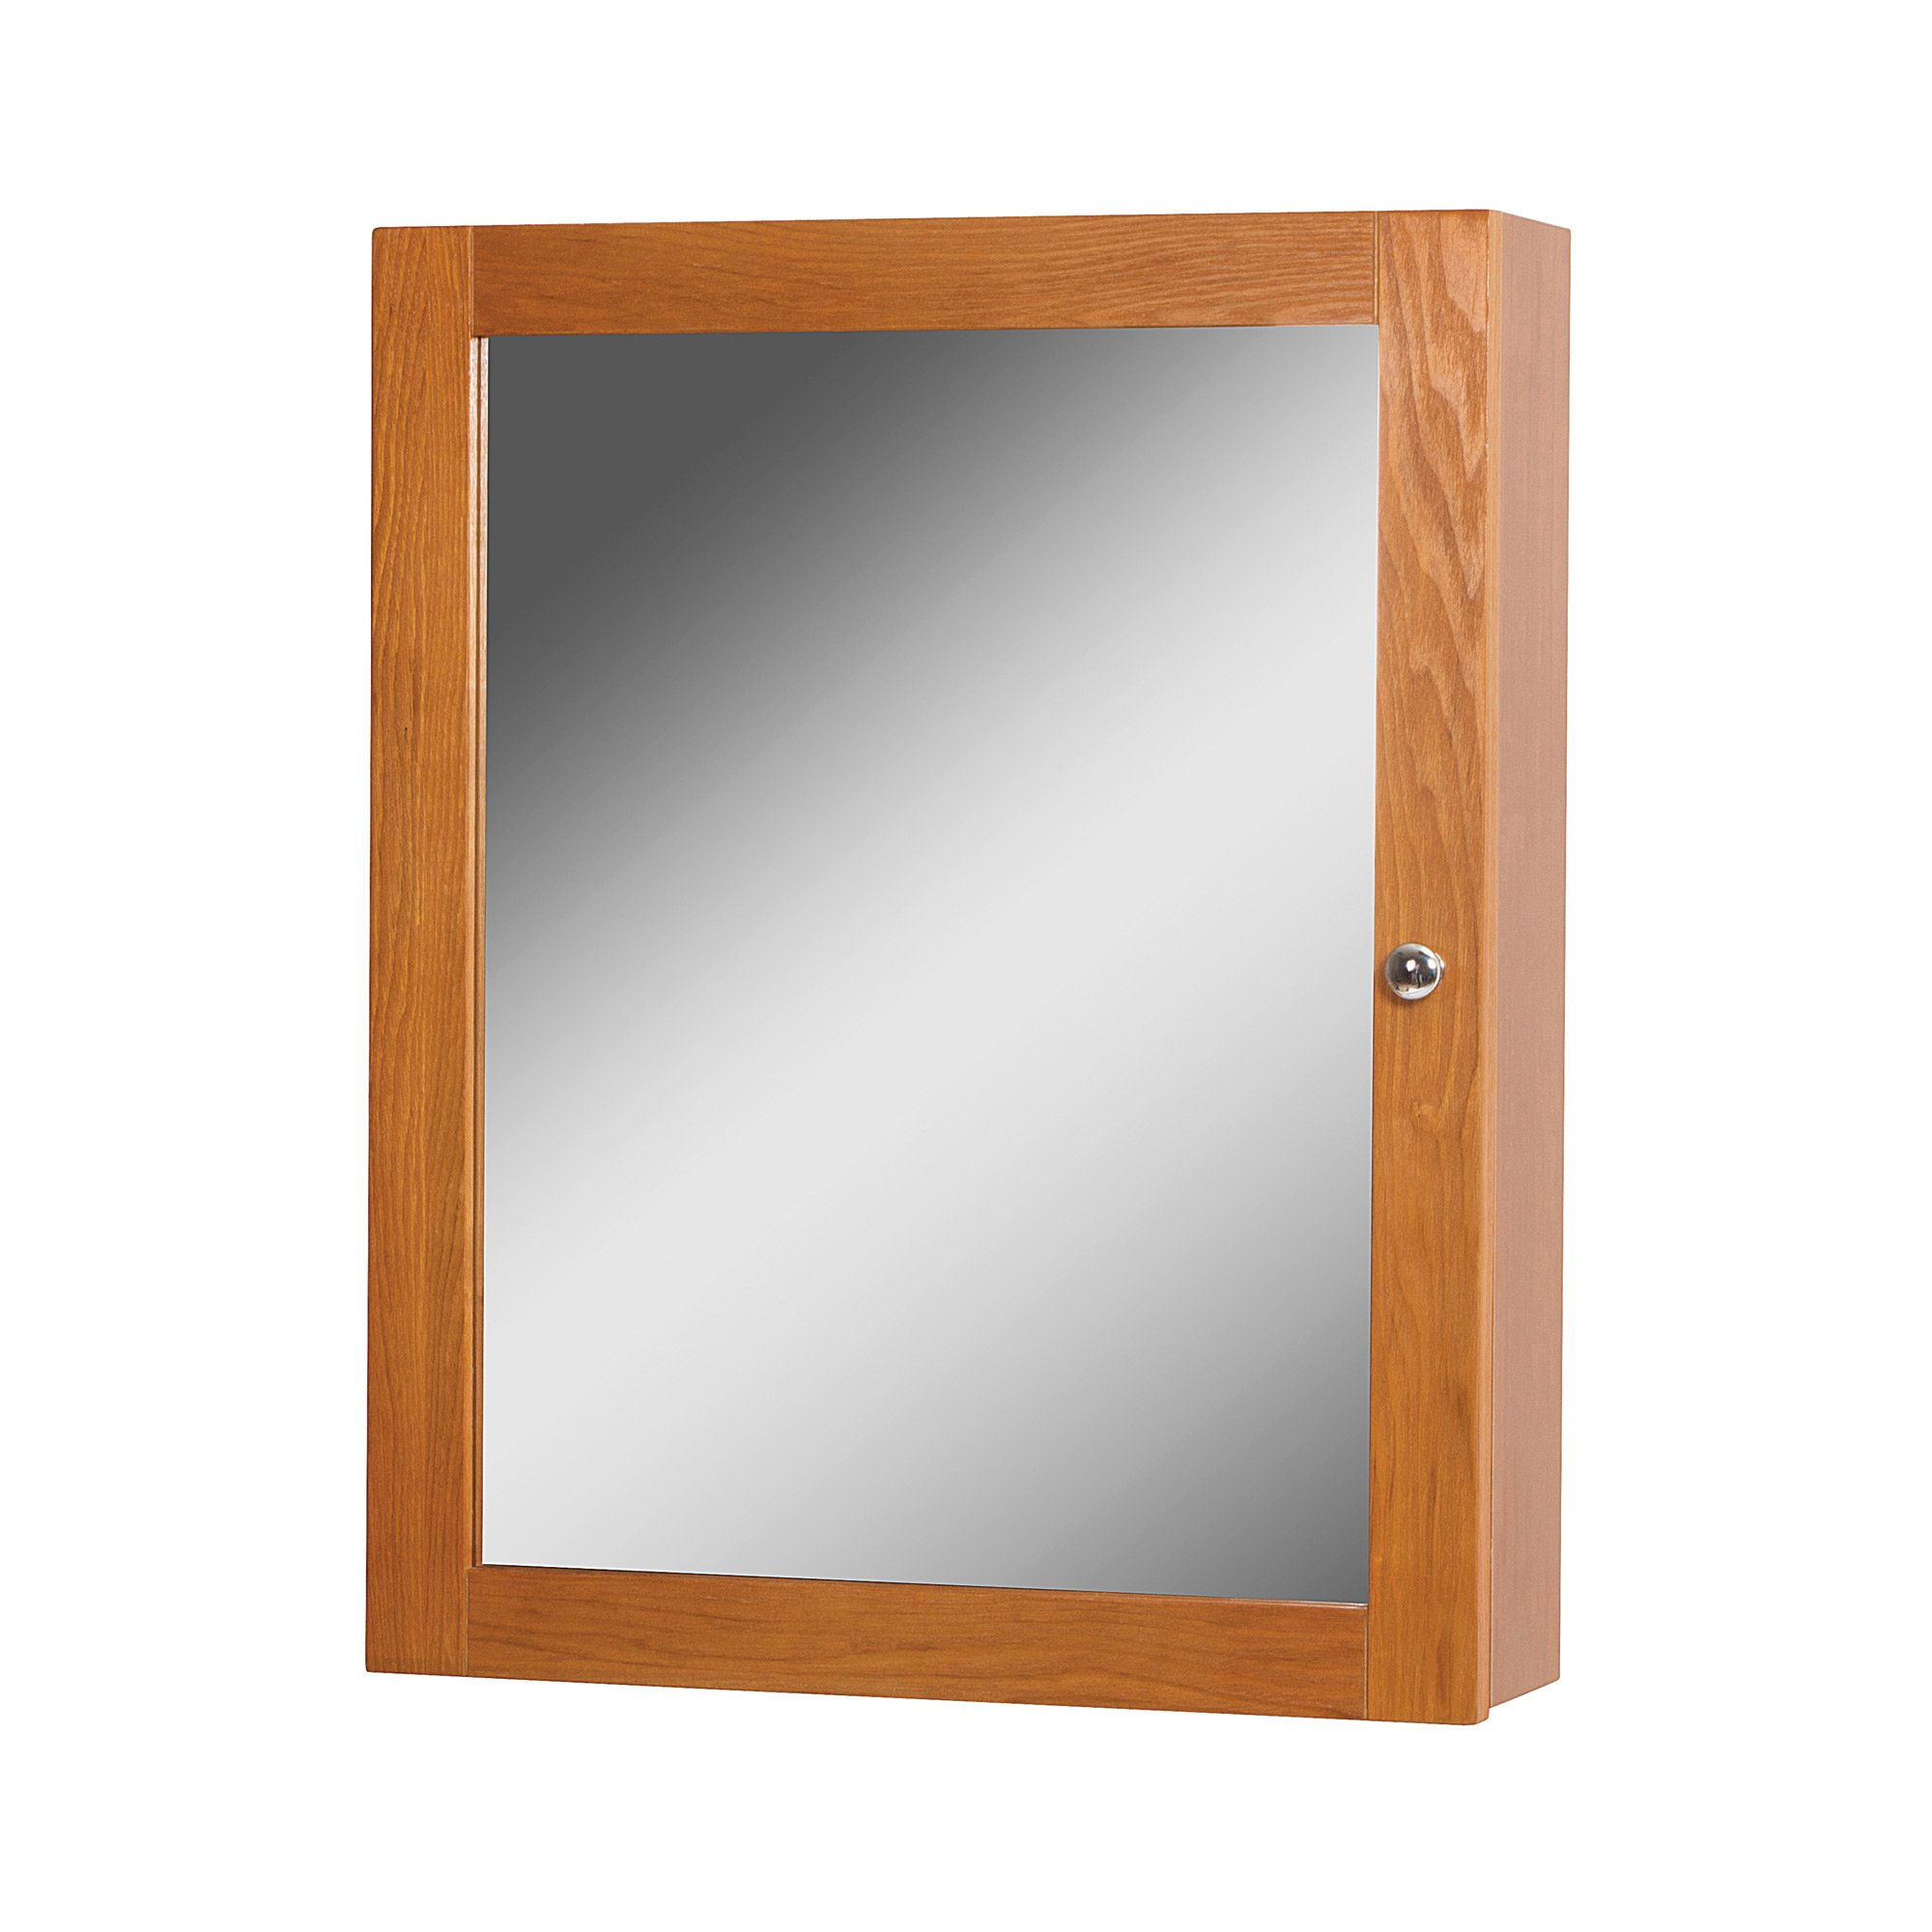 door mounting small brown medicine b mounted single shelf storage double cabinets oak home wall varnished optronk furniture generously cabinet bathroom towel as